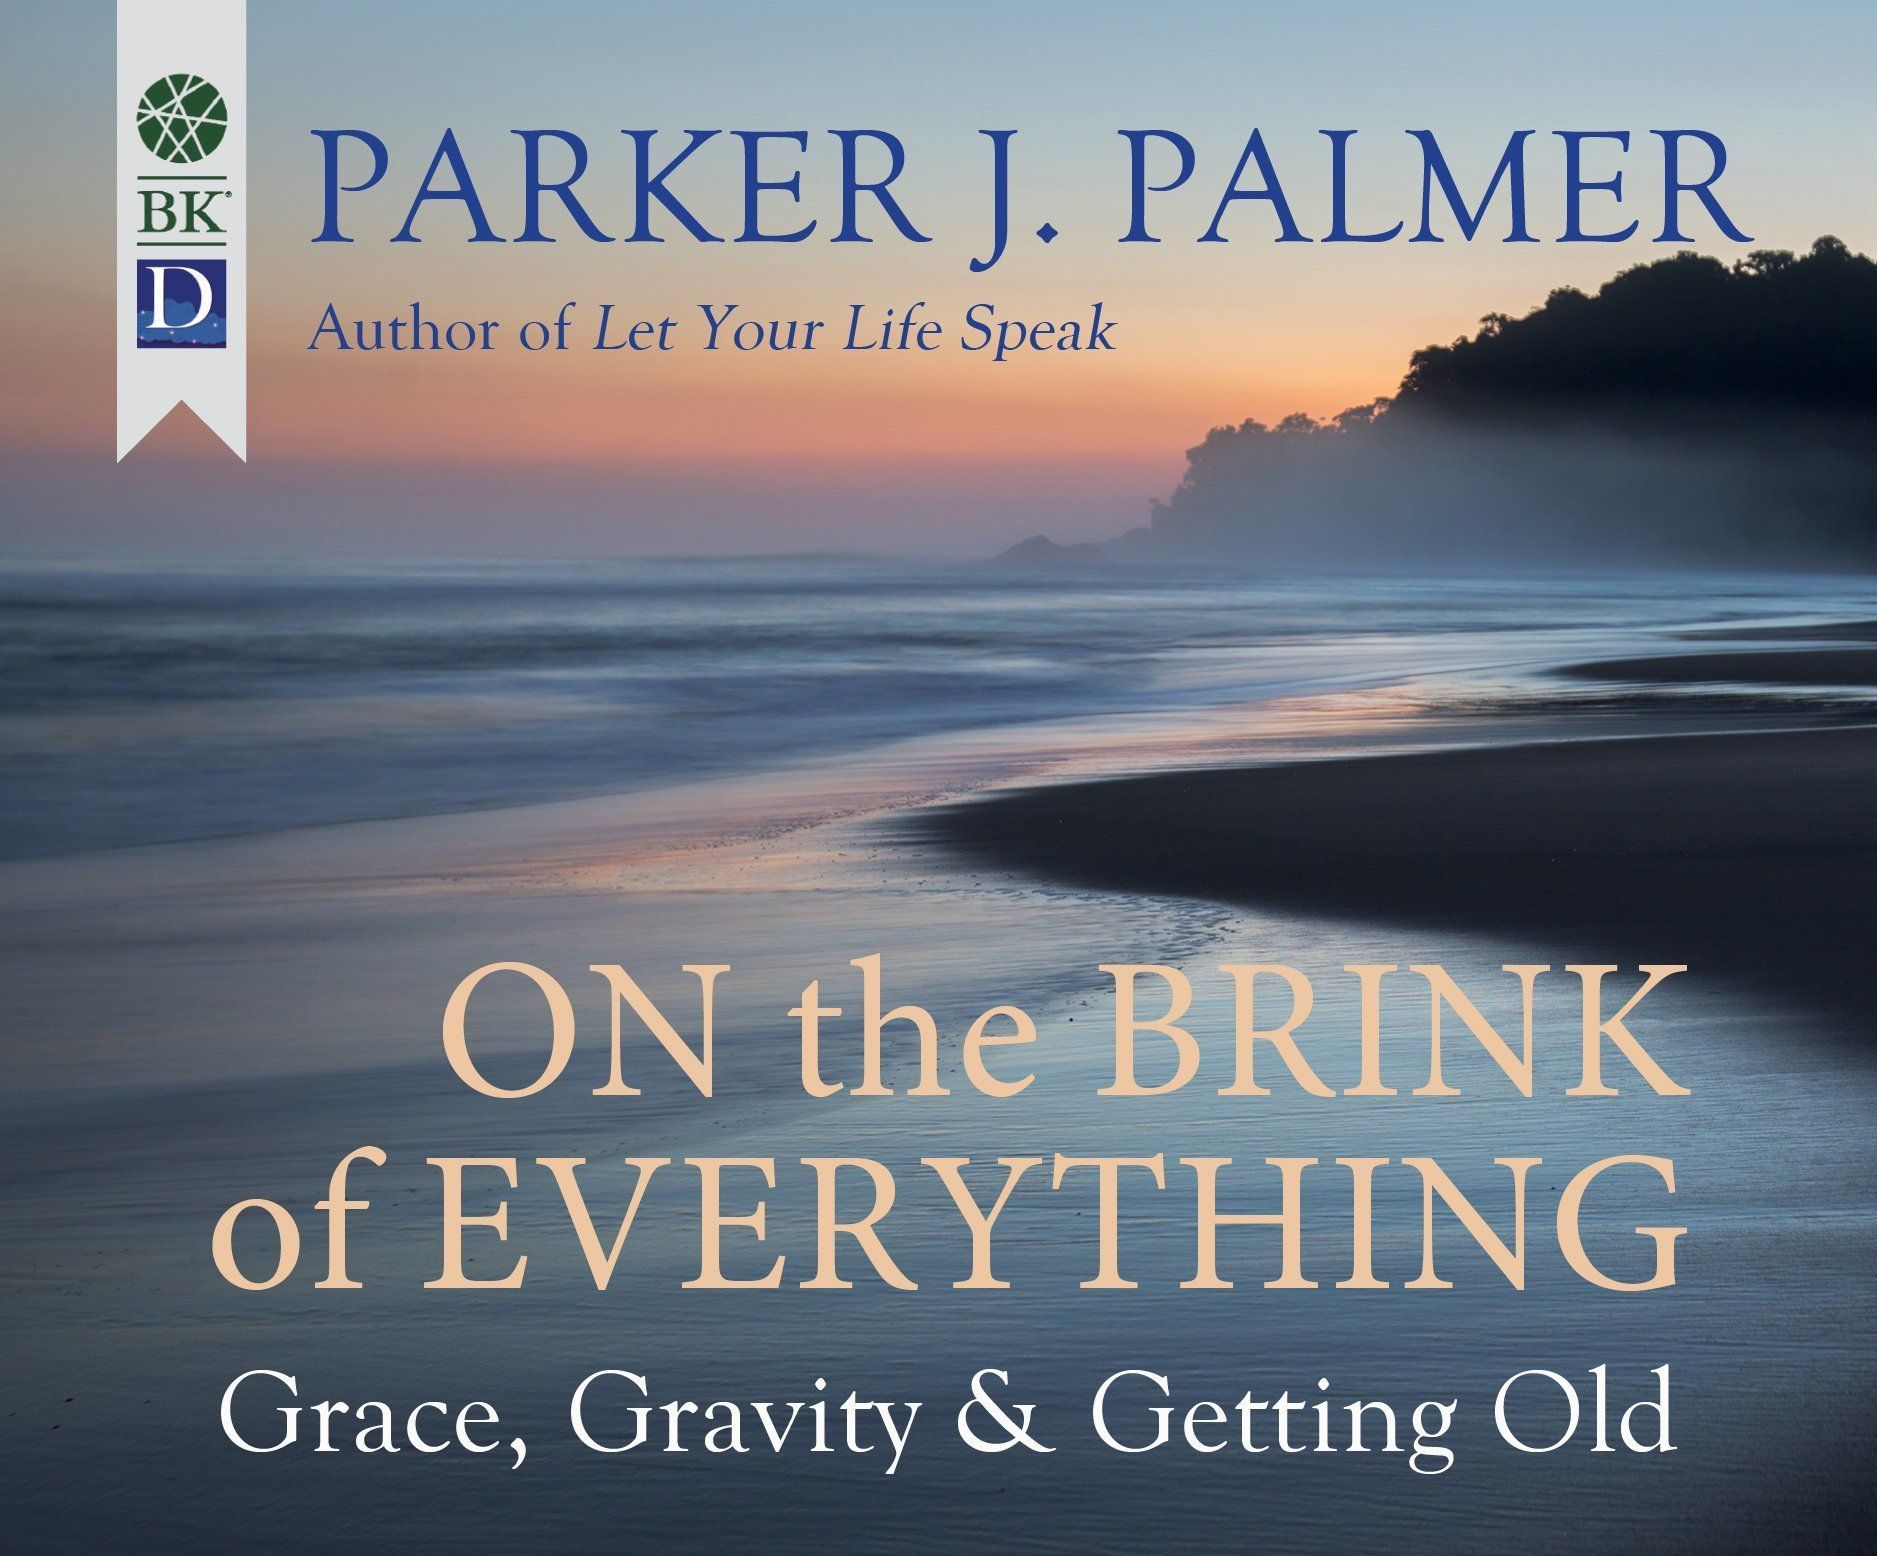 On the Brink of Everything:  Grace, Gravity & Getting Old